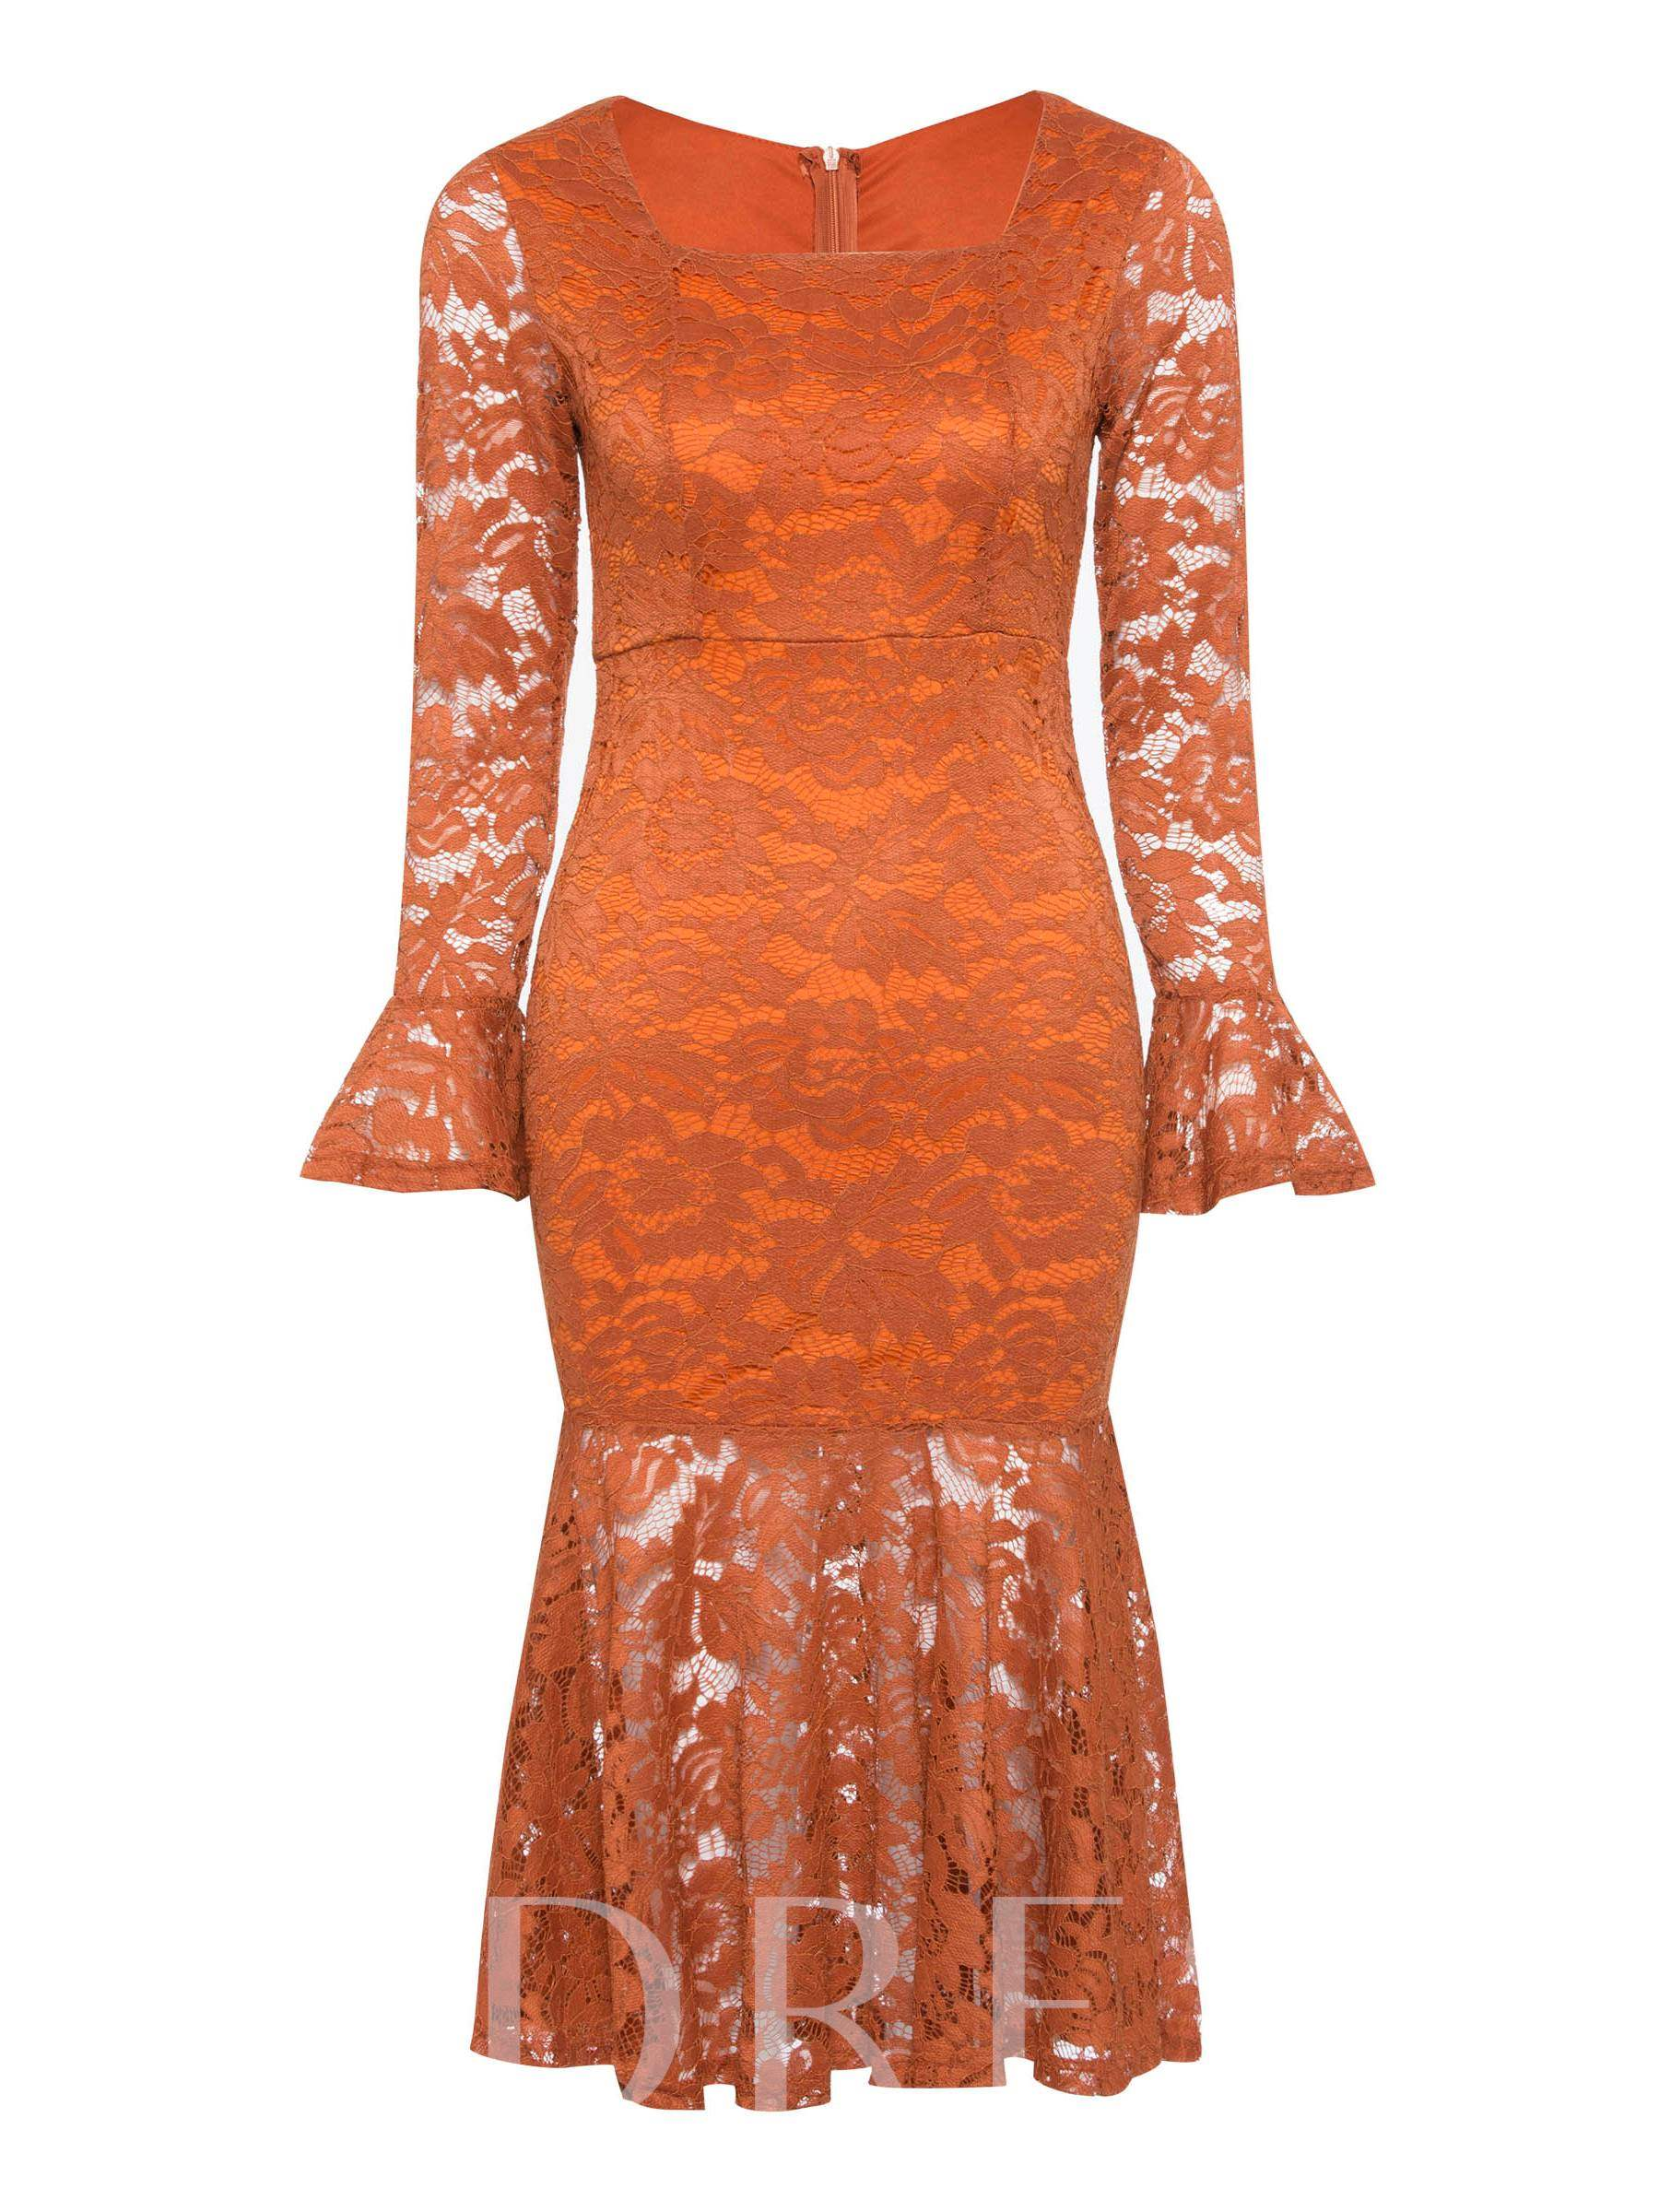 Buy Square Neck Long Sleeve Ruffle Lace Dress, Spring,Summer,Fall, 13371313 for $19.36 in TBDress store